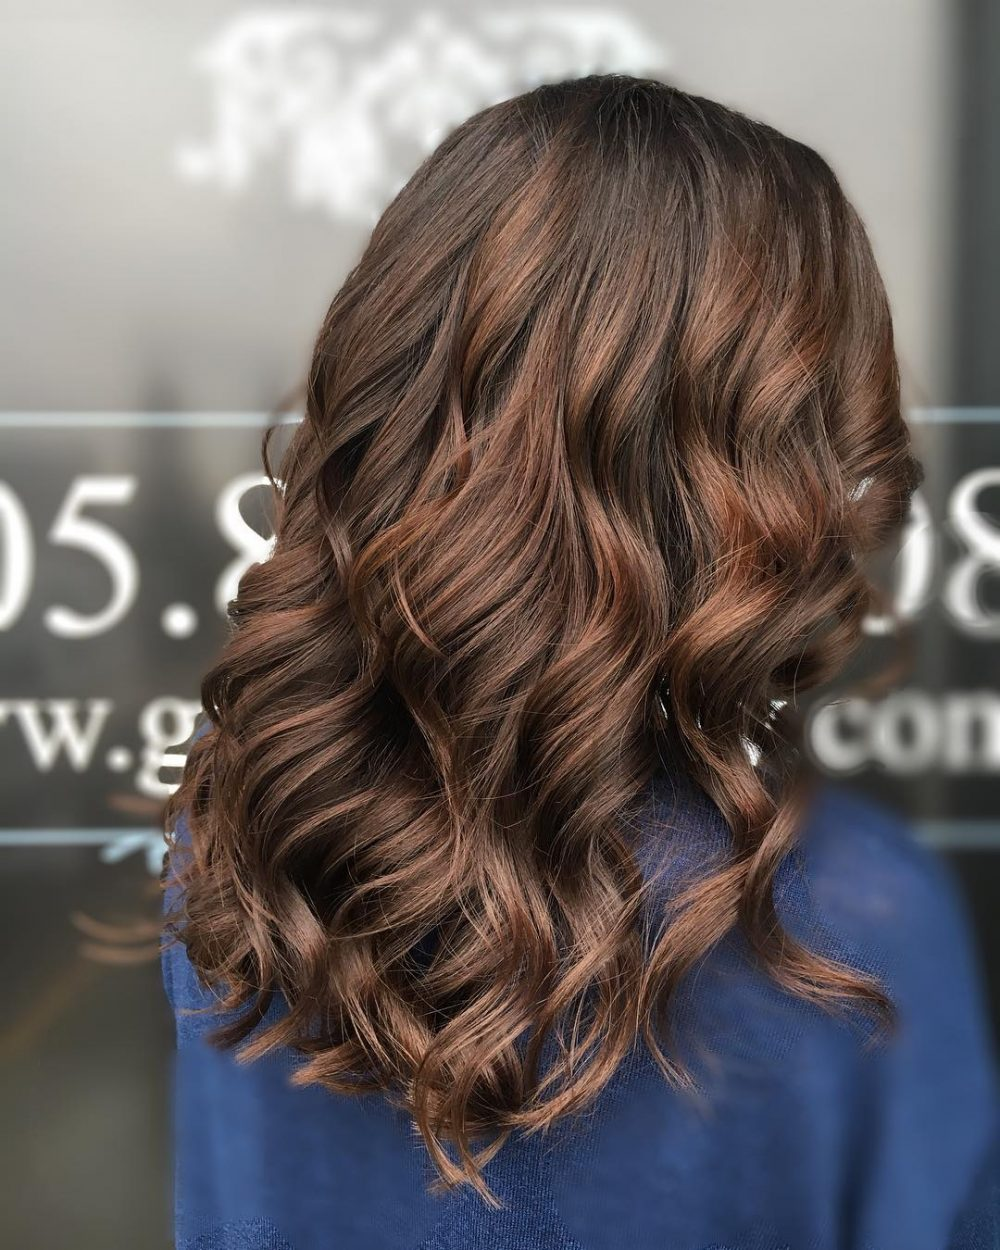 34 Sweetest Caramel Highlights On Light & Dark Brown Hair